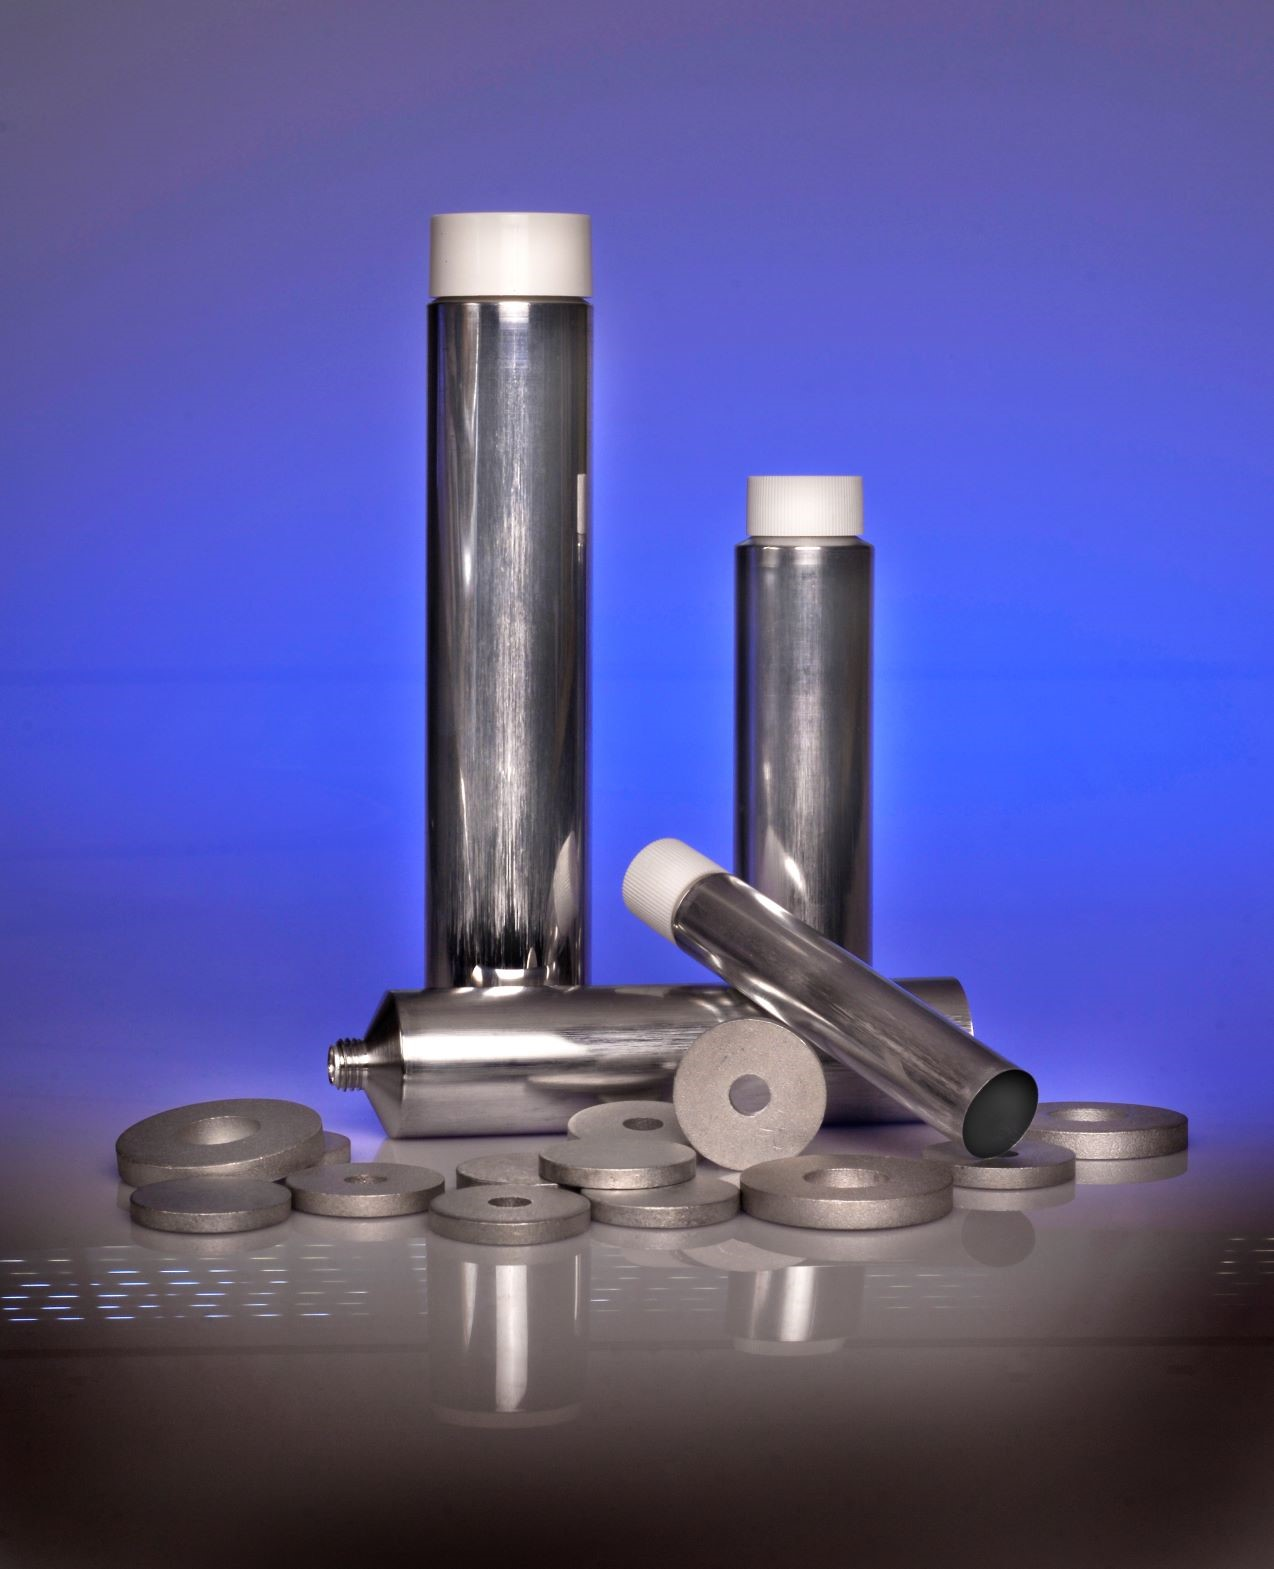 The aluminum tube and aerosol can industry in Germany is resilient and reliable, also in times of crisis